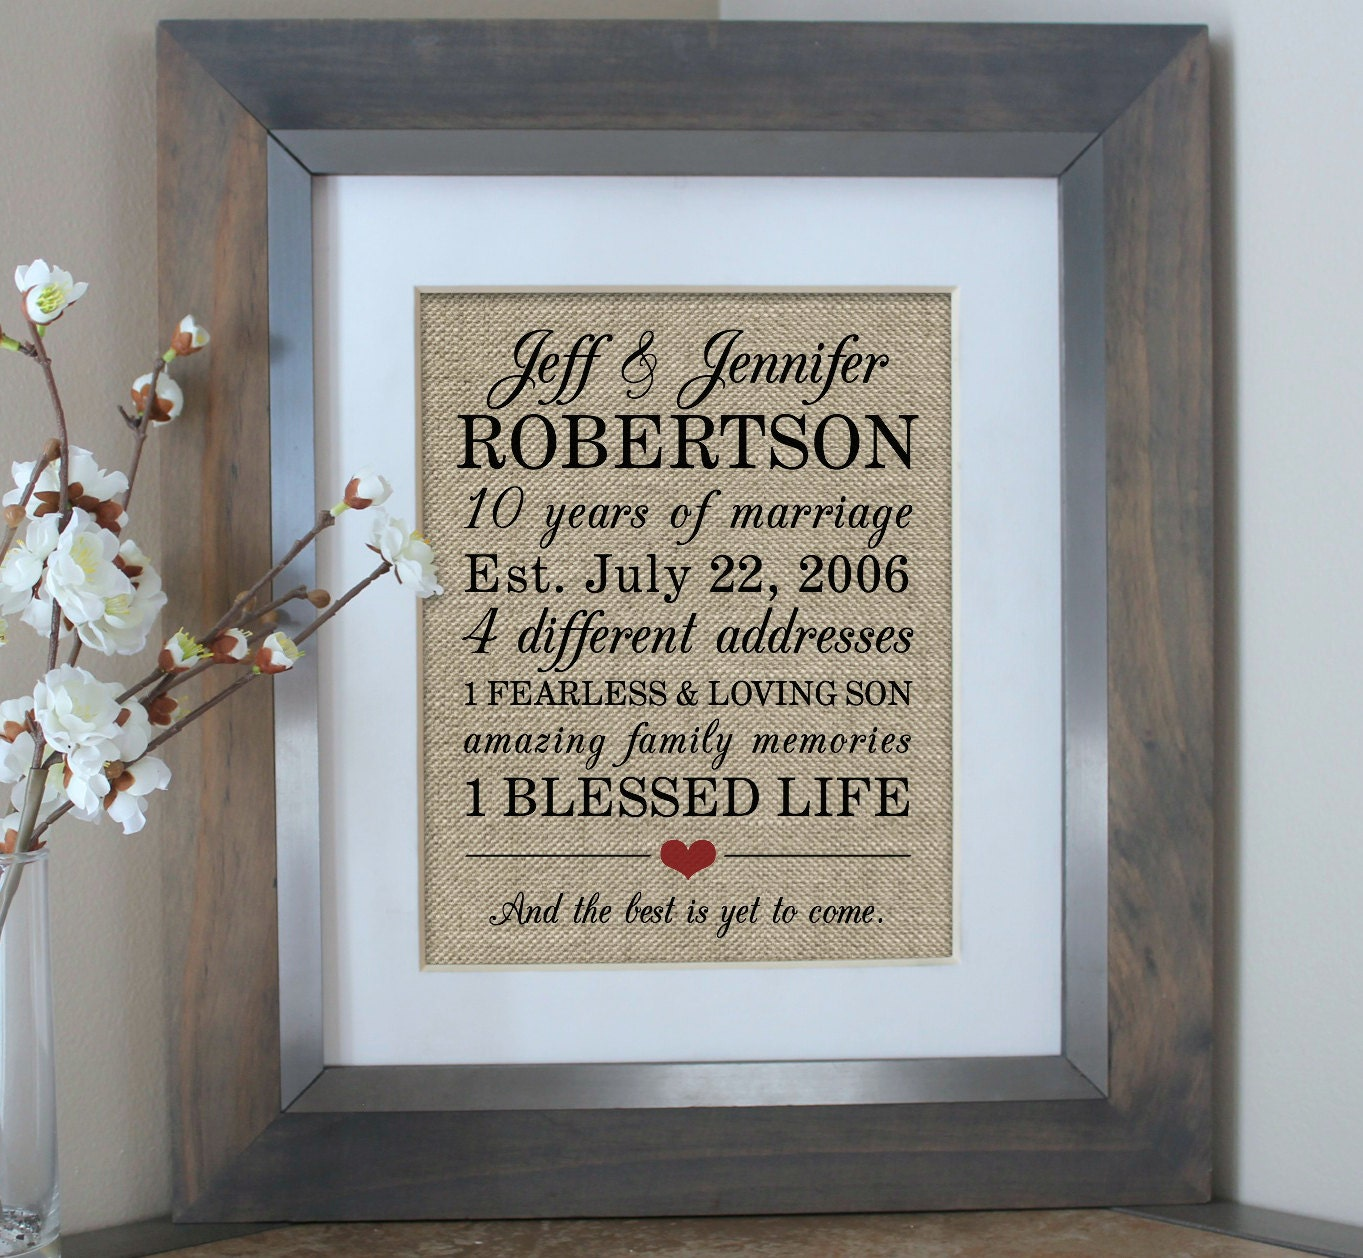 Gifts For Wedding Anniversaries: 10 Year Anniversary Gift For Men 10th Wedding Anniversary